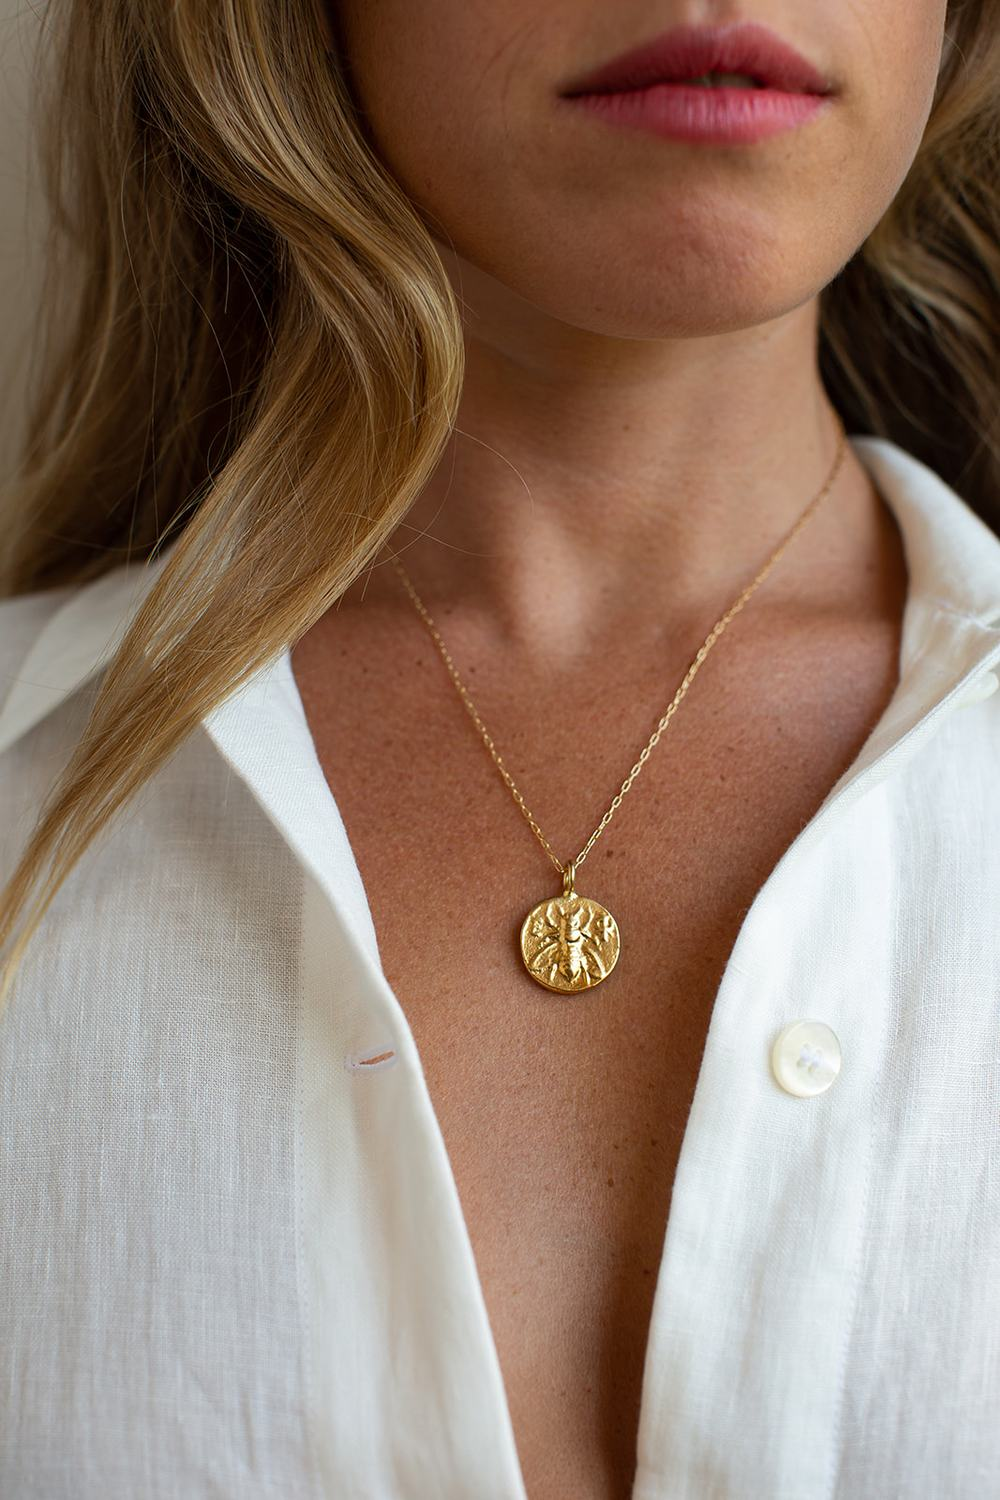 My Favorite Jewelry Designers For Unique Jewelry: Hart Hagerty Ephesus Bee Lucky Charm Necklace